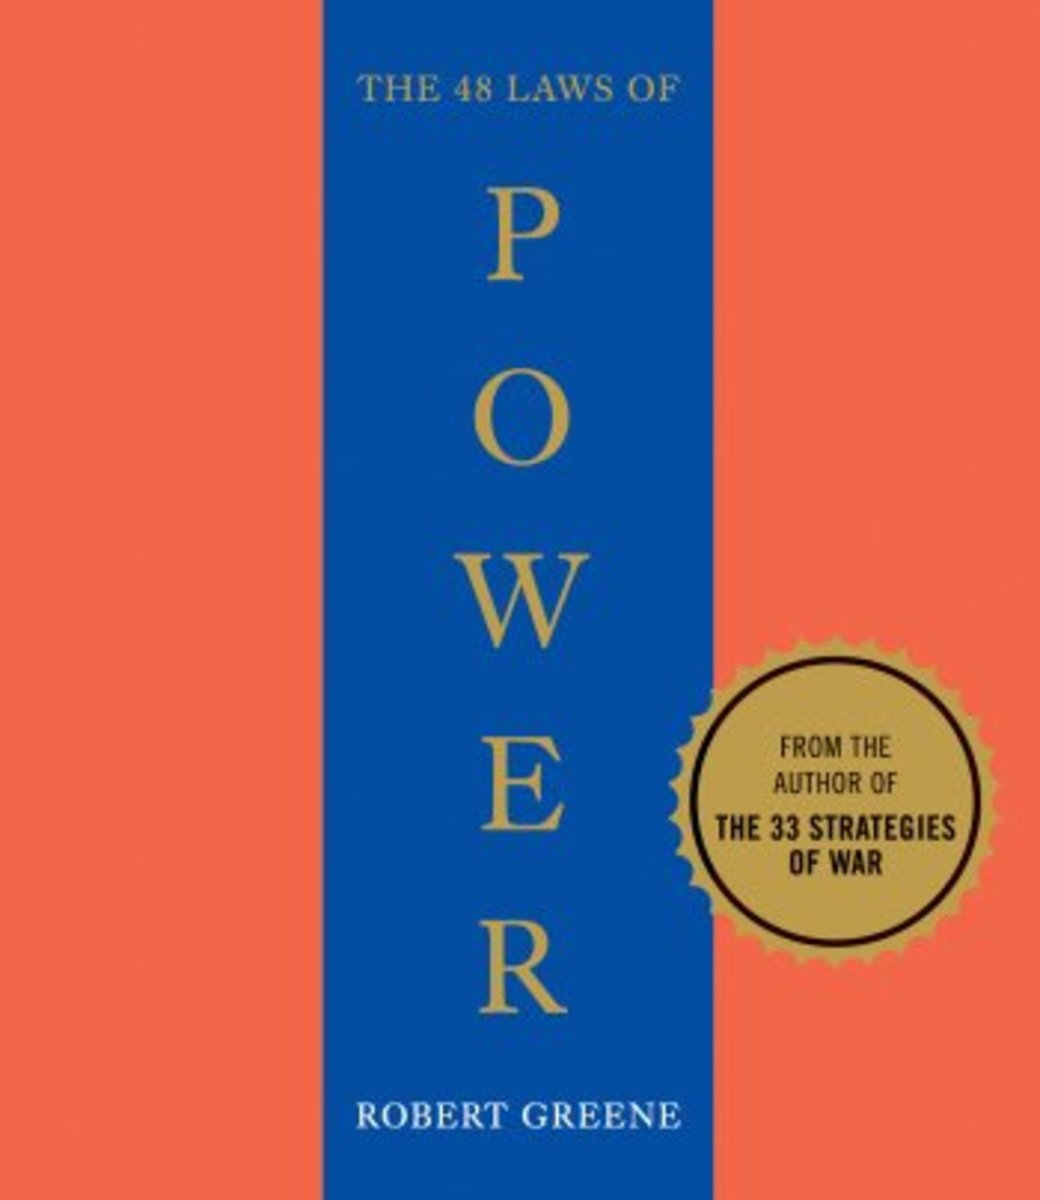 Book Review: The 48 Laws of Power by Robert Greene